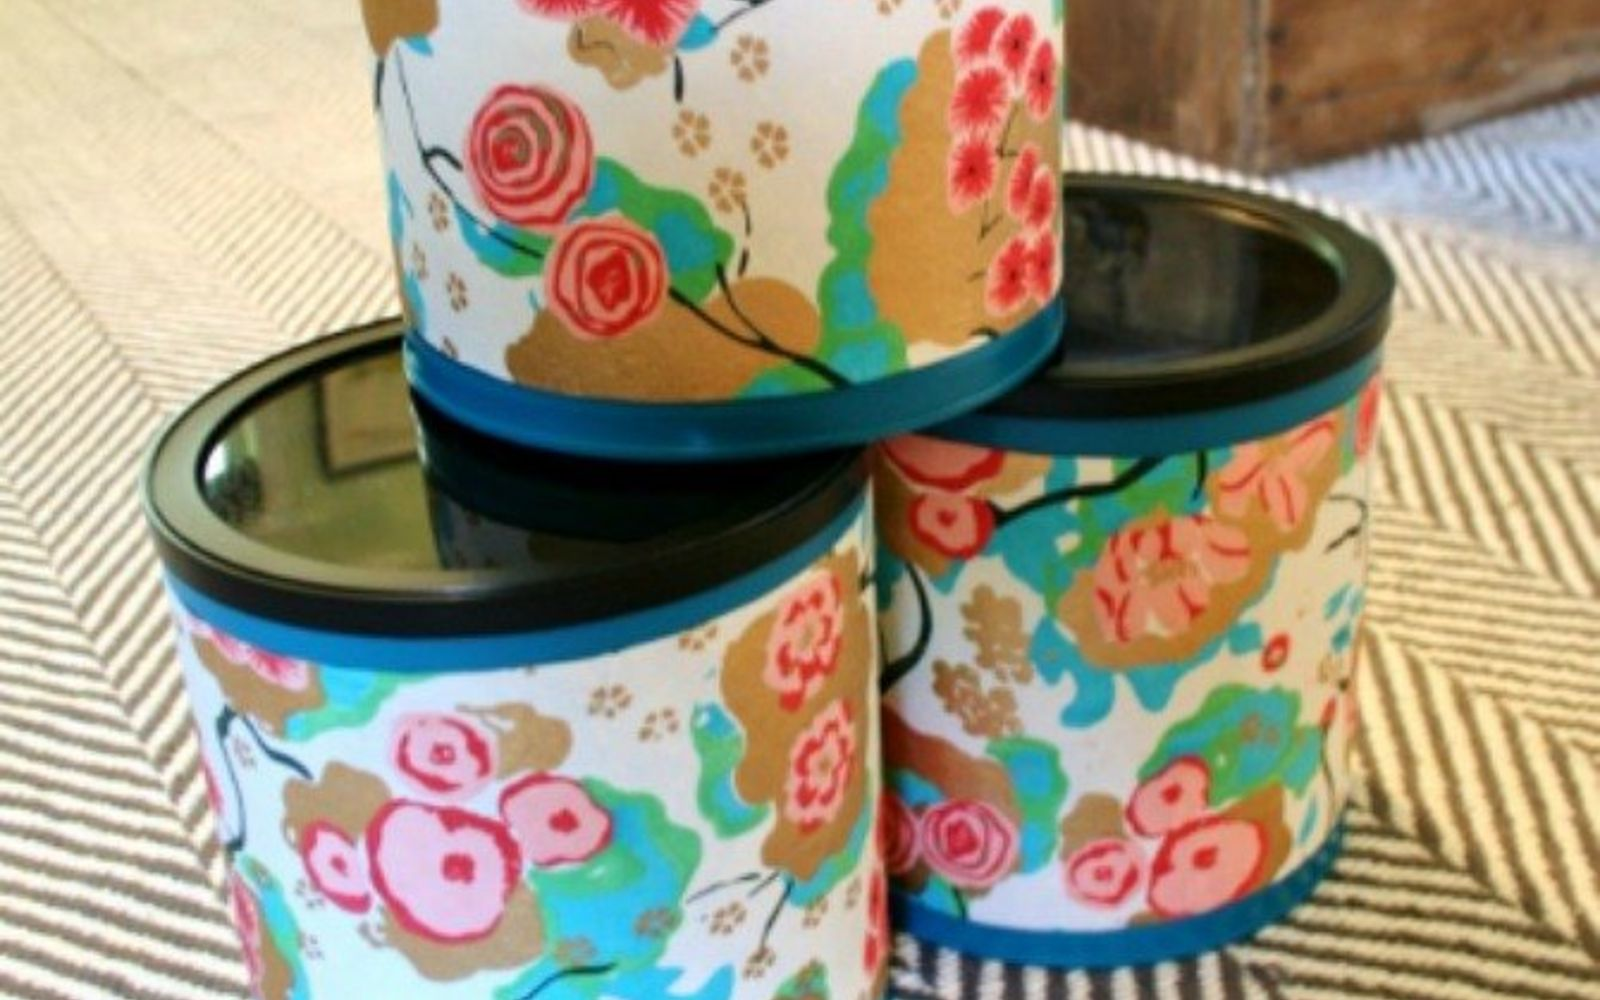 s why everyone is saving their empty food containers, repurposing upcycling, They are great for organizing anything